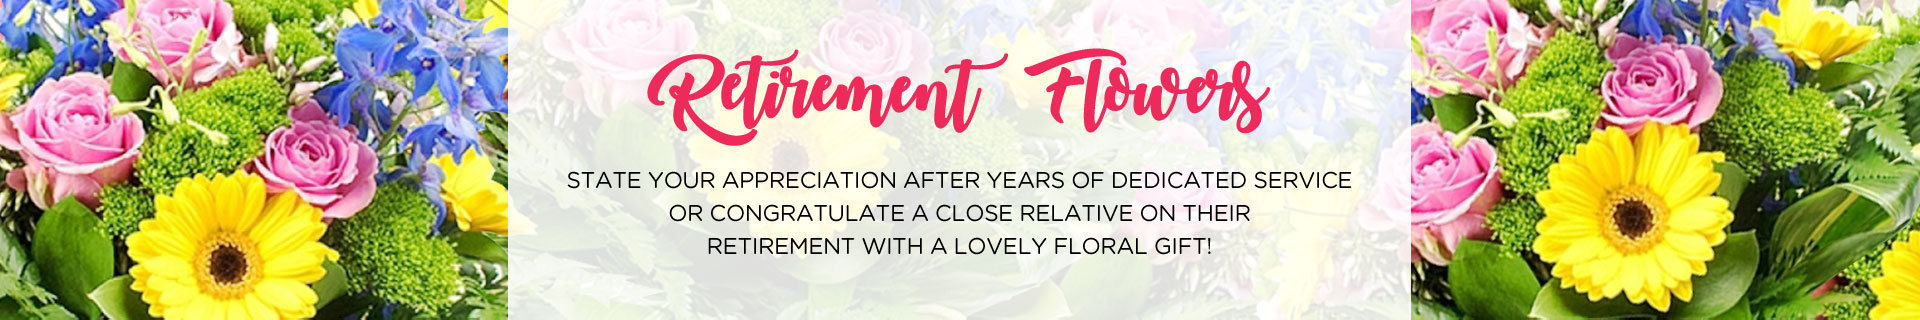 Retirement Flowers